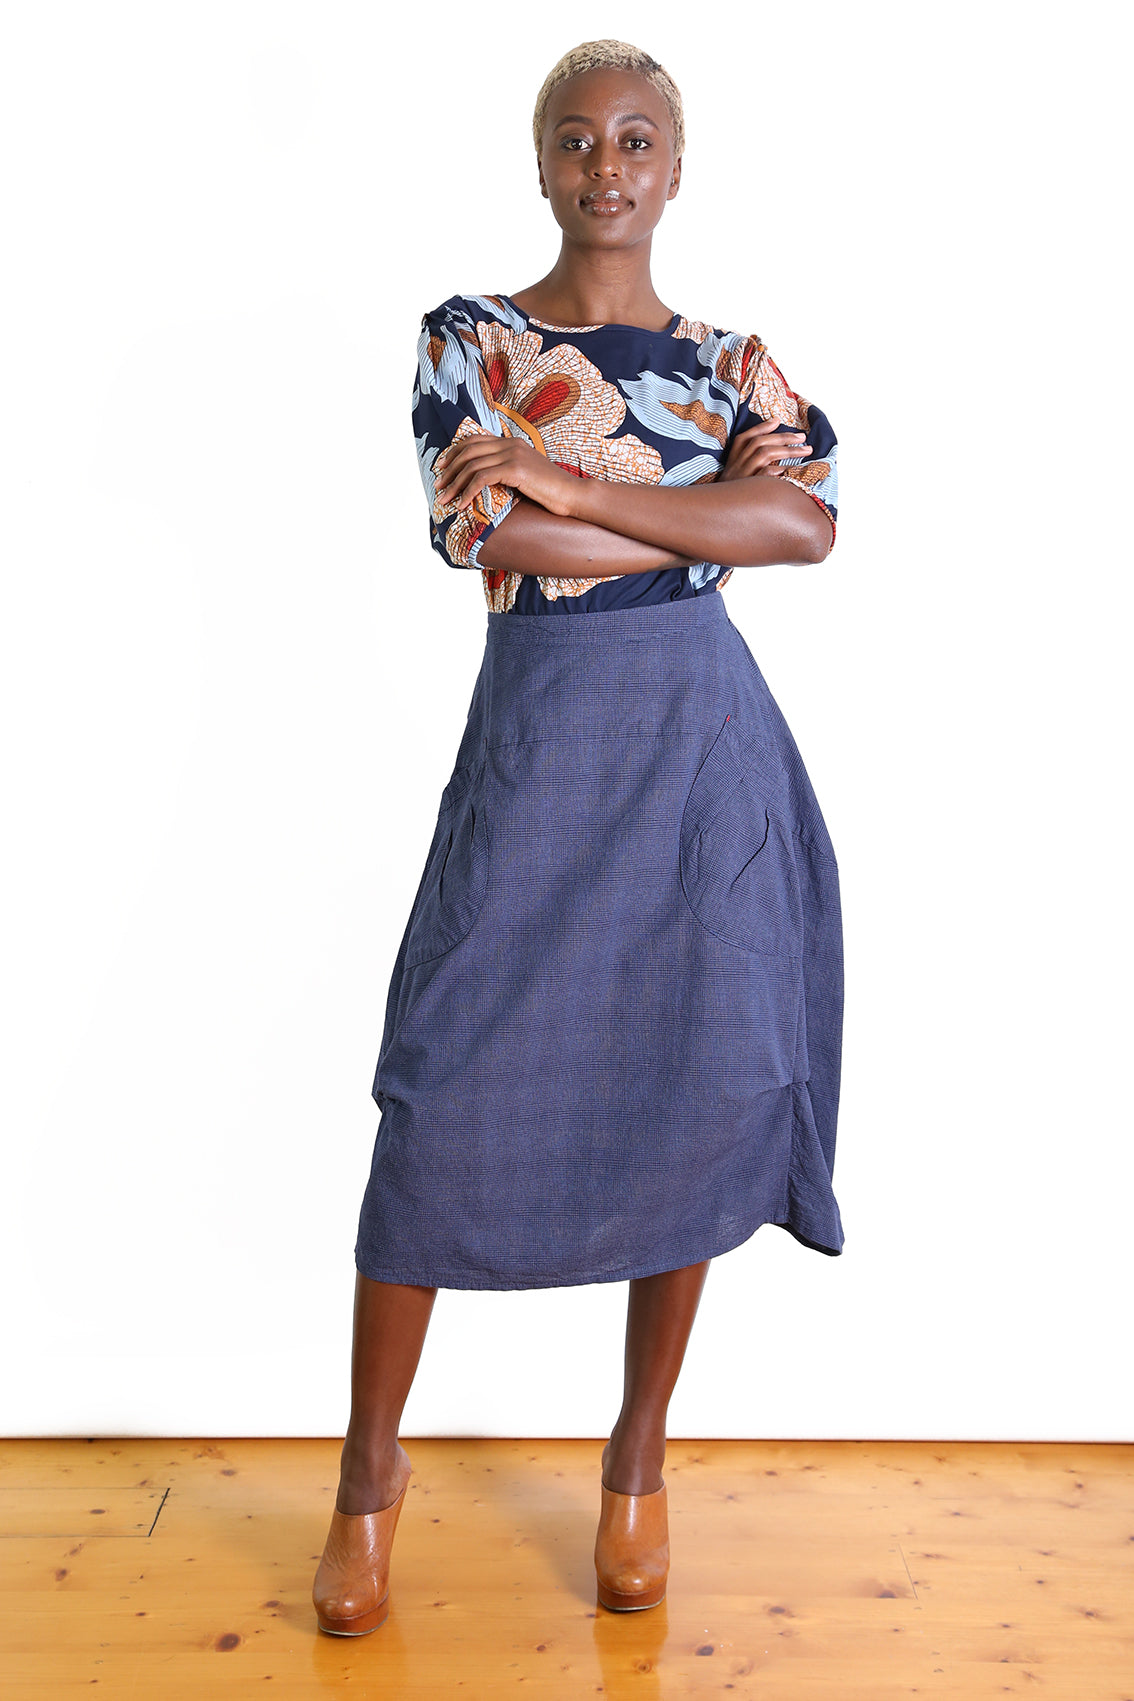 Milwaukee Textured Skirt - Navy